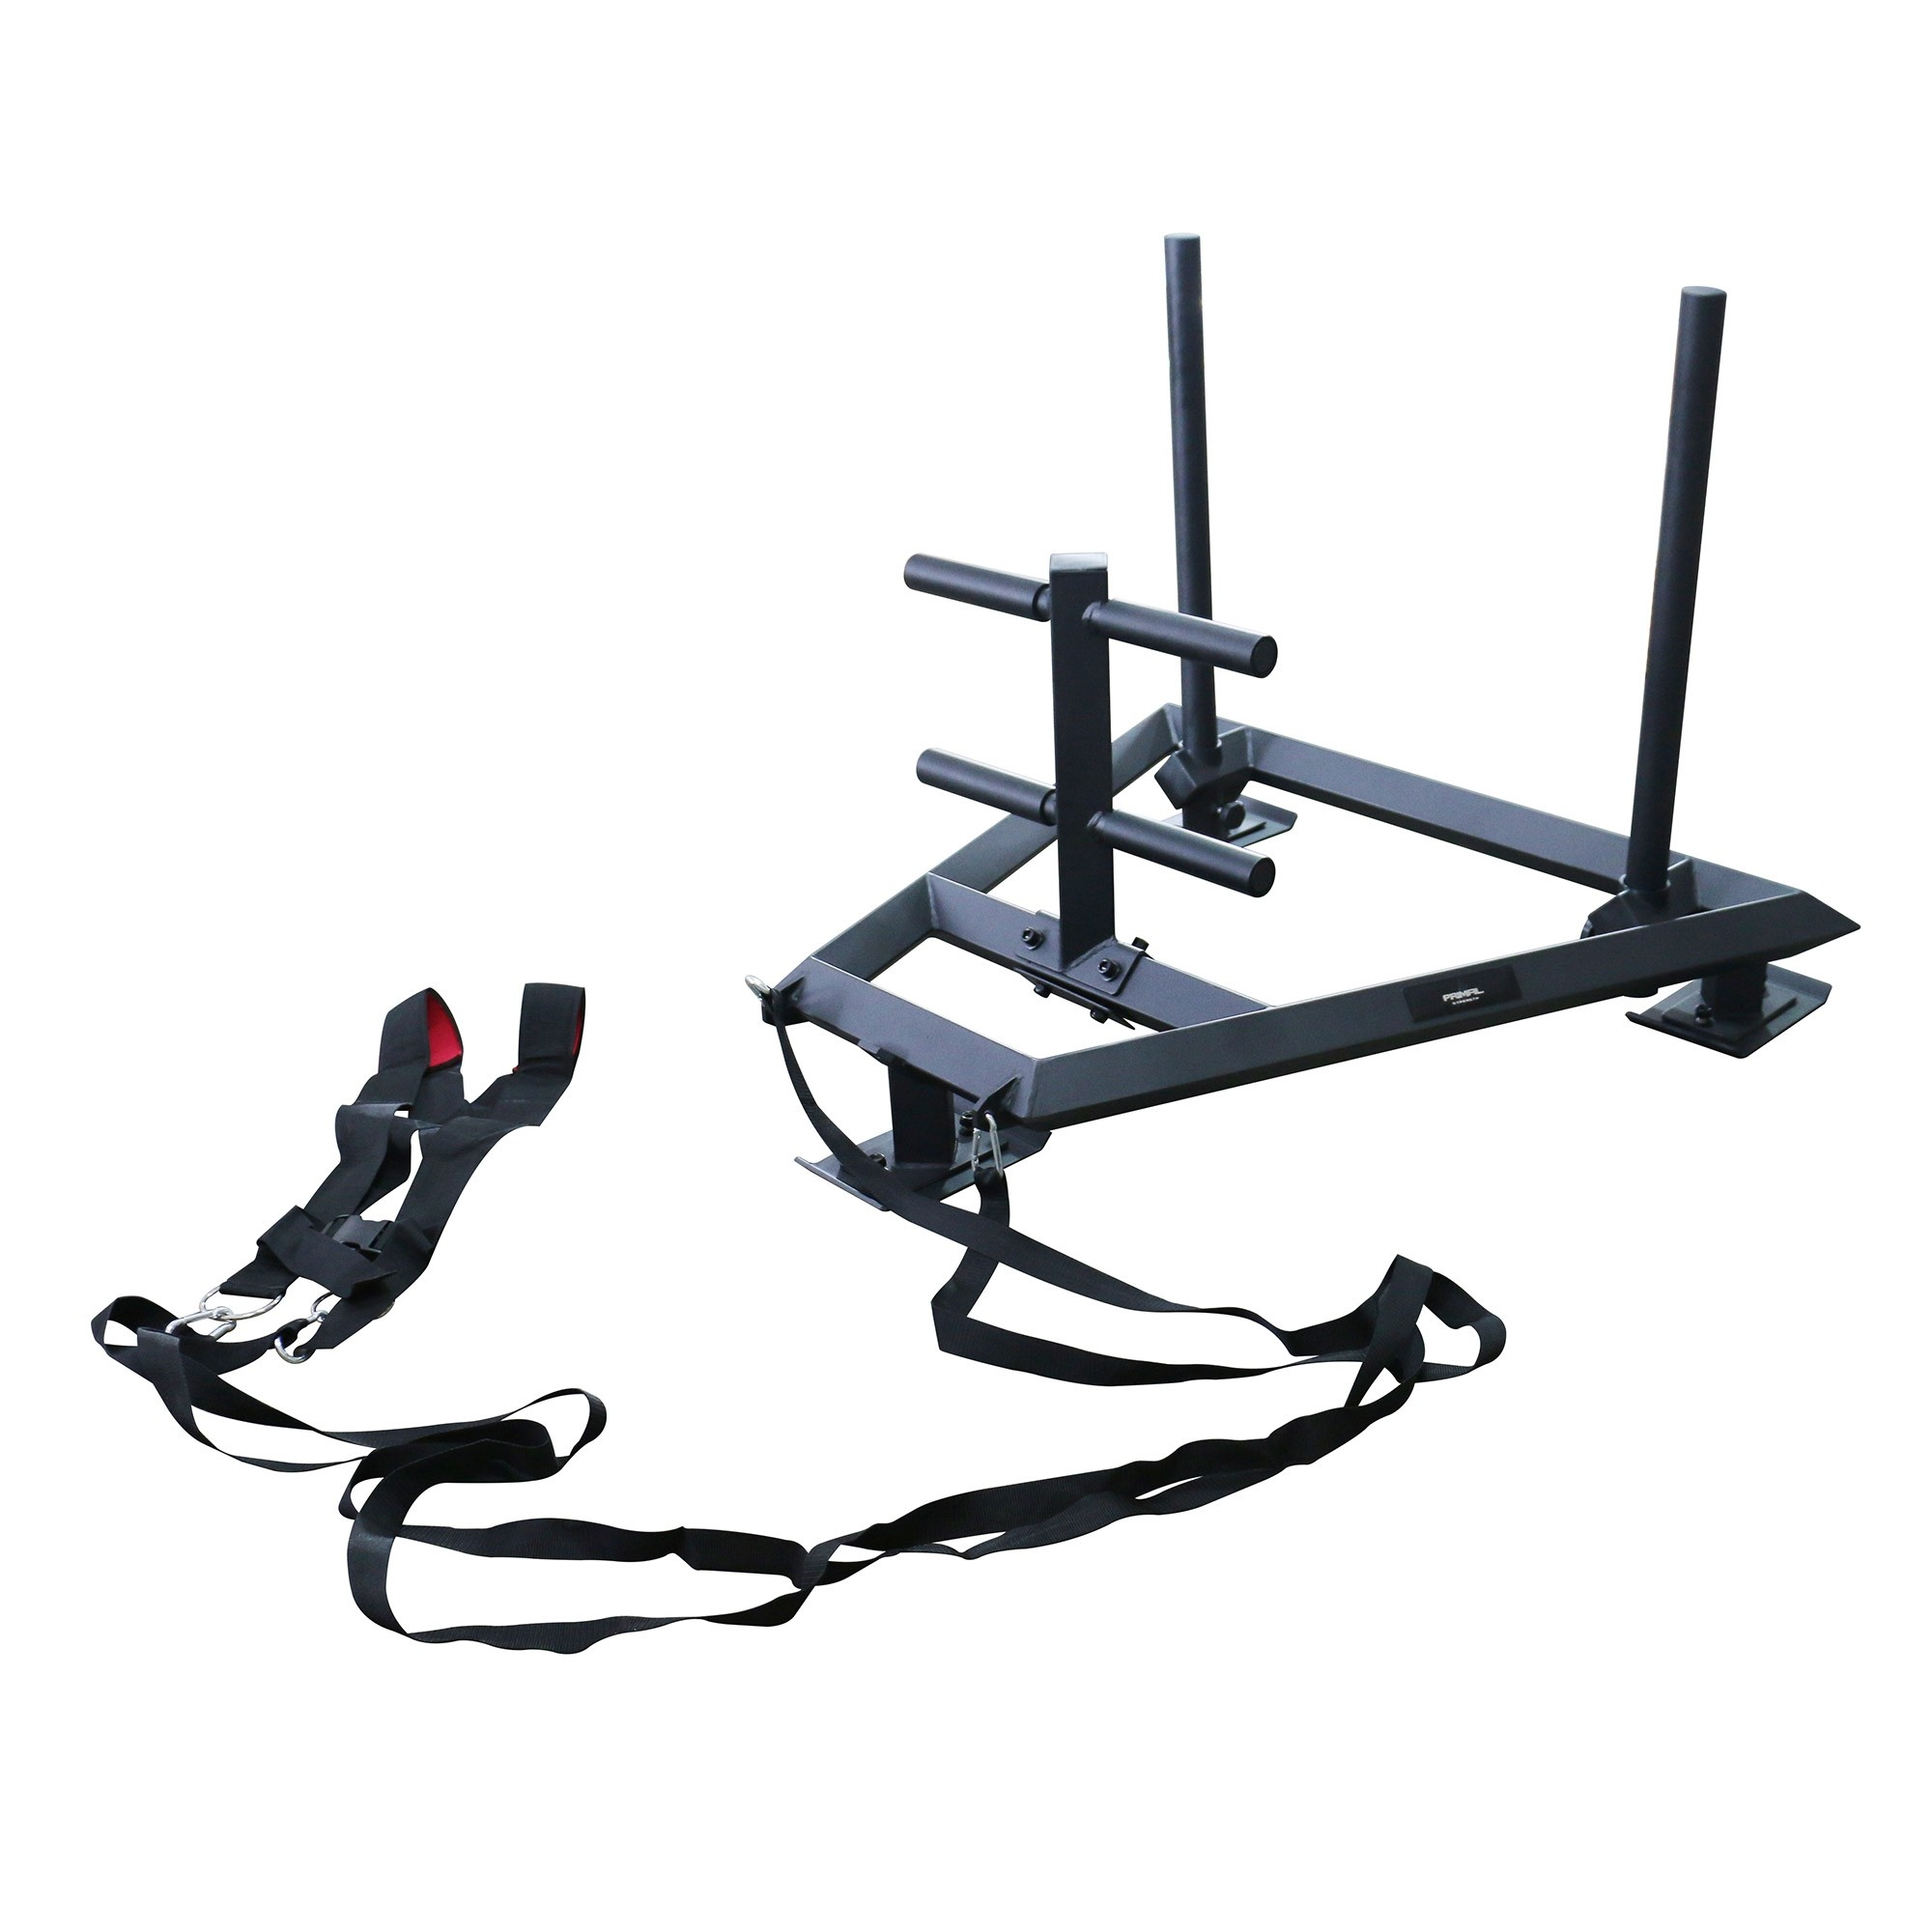 Primal Strength Stealth Commercial Fitness Premium Prowler Sled (Matte Black) - PRE ORDER FOR APRIL